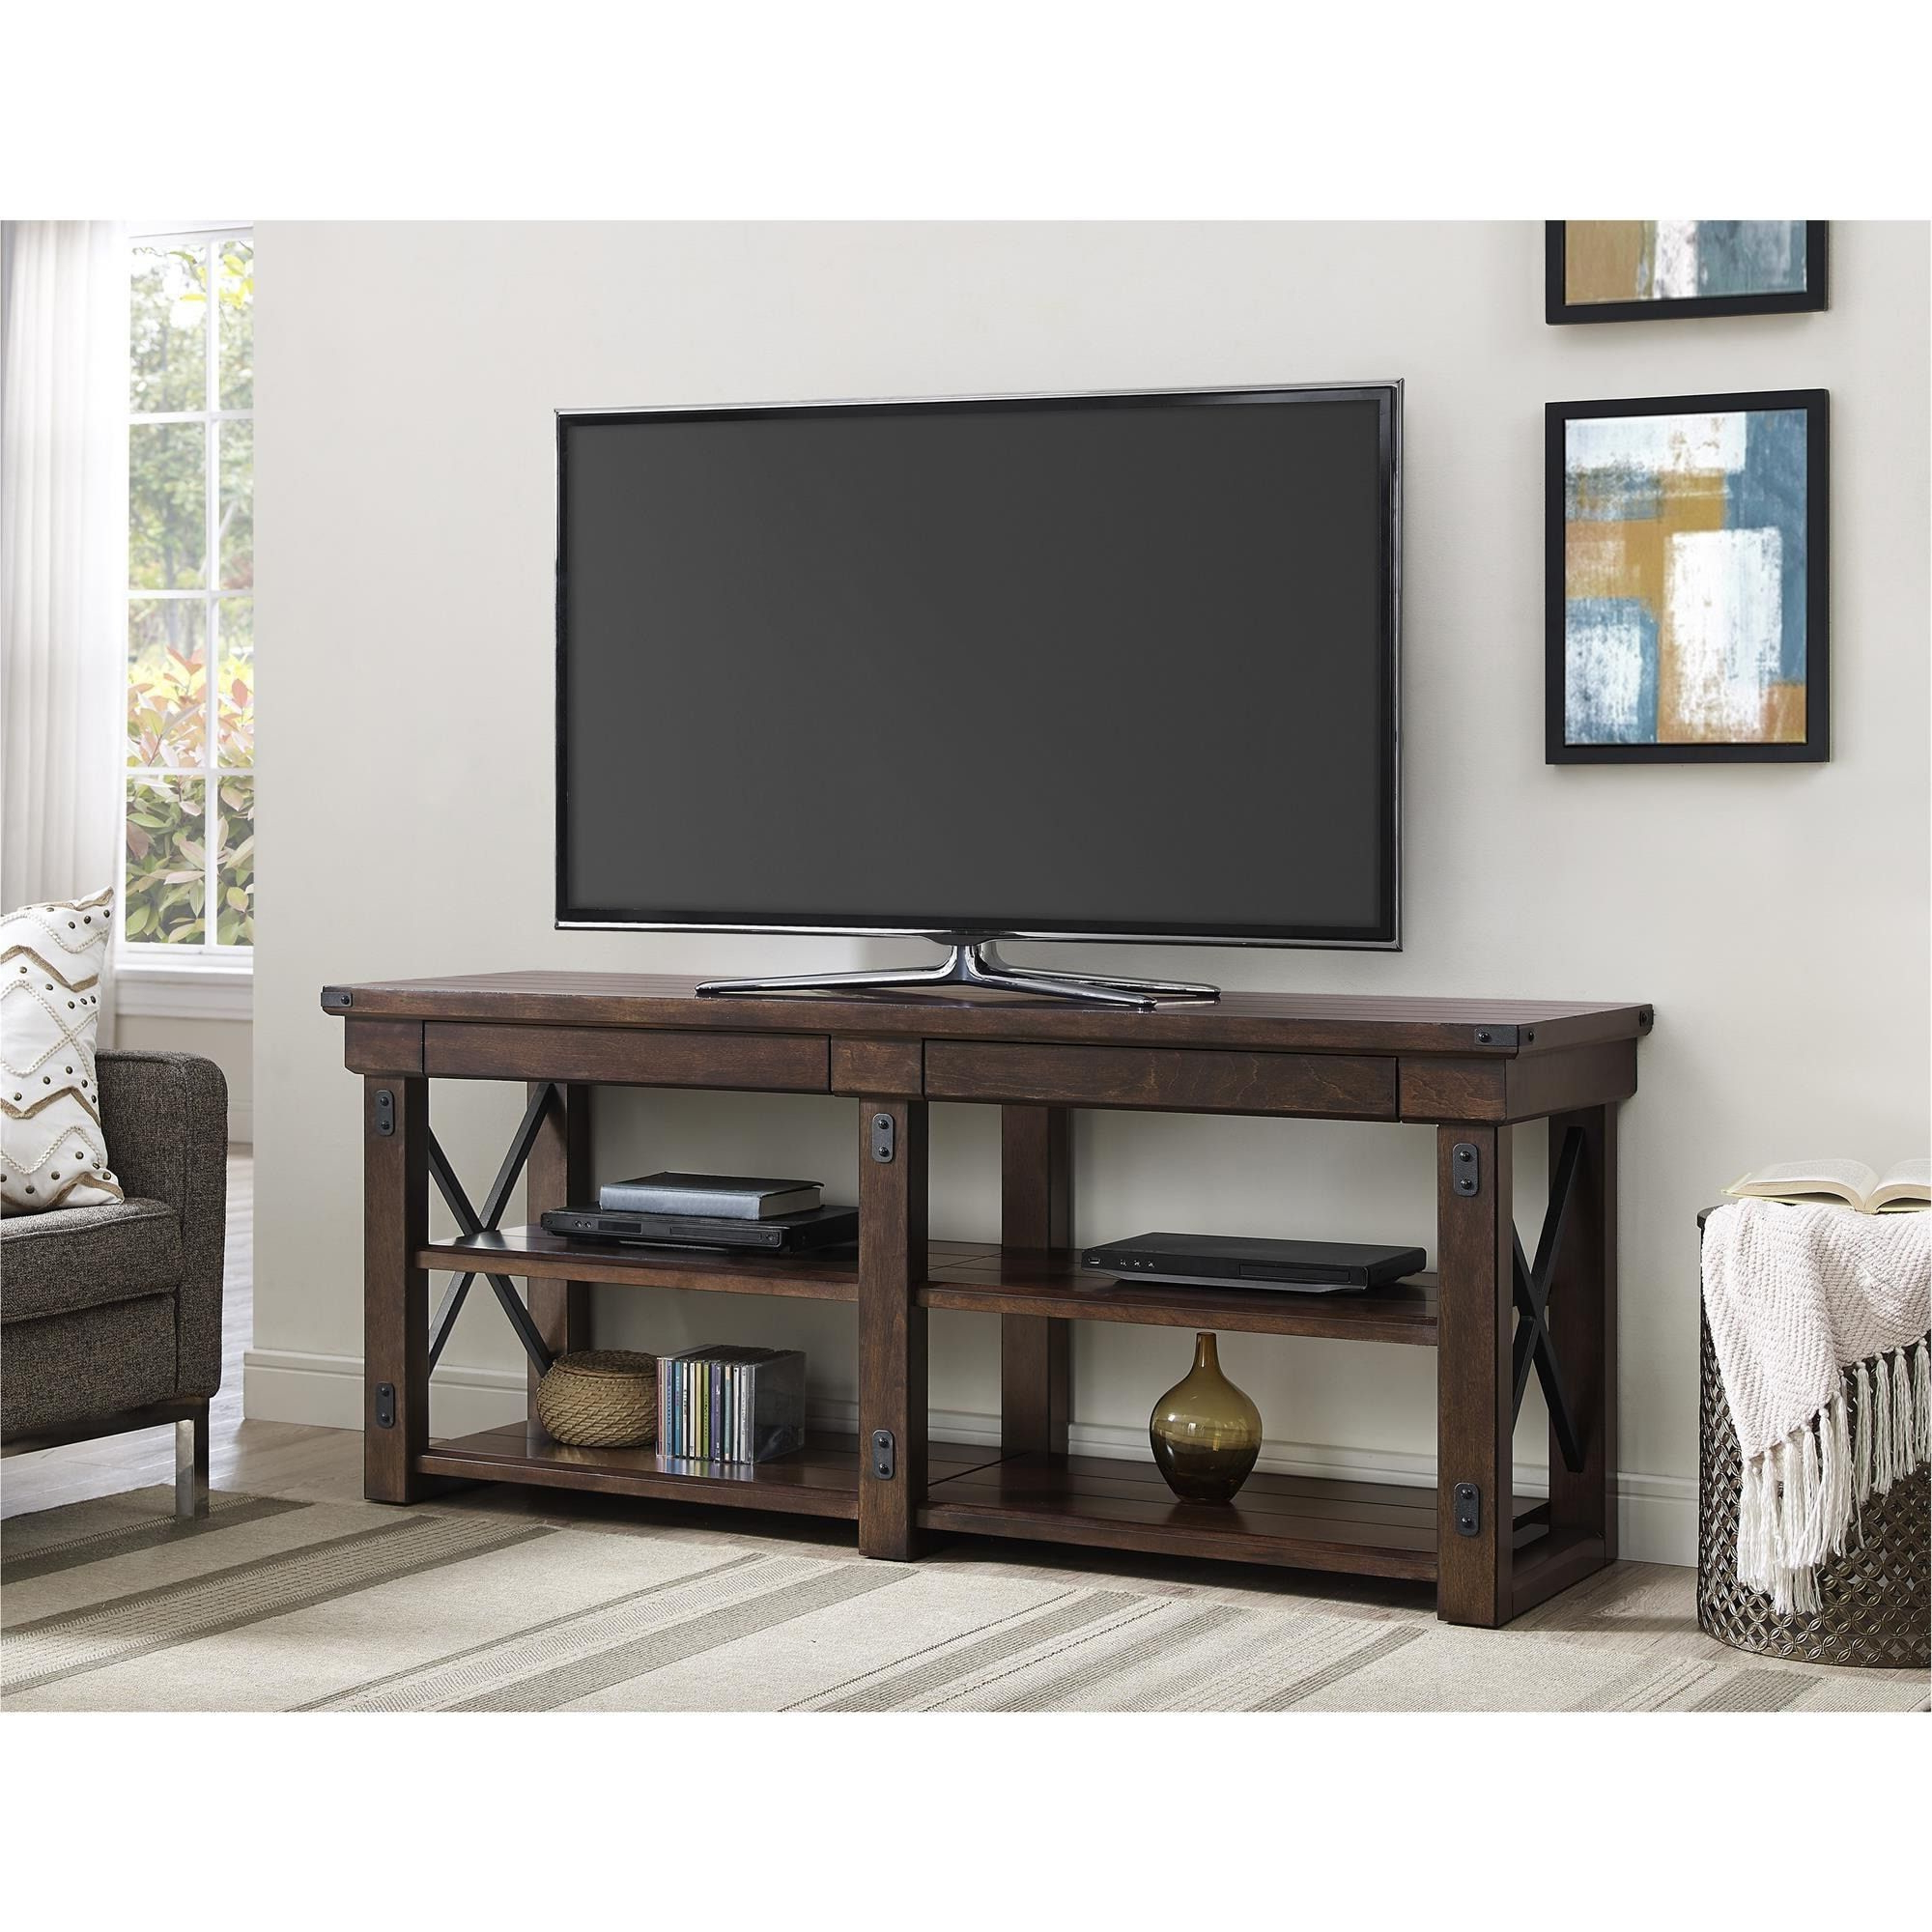 Ameriwood Home Wildwood Mahogany Veneer 65 Inch Tv Stand (65 Inch Tv Throughout Trendy Noah 75 Inch Tv Stands (View 3 of 20)